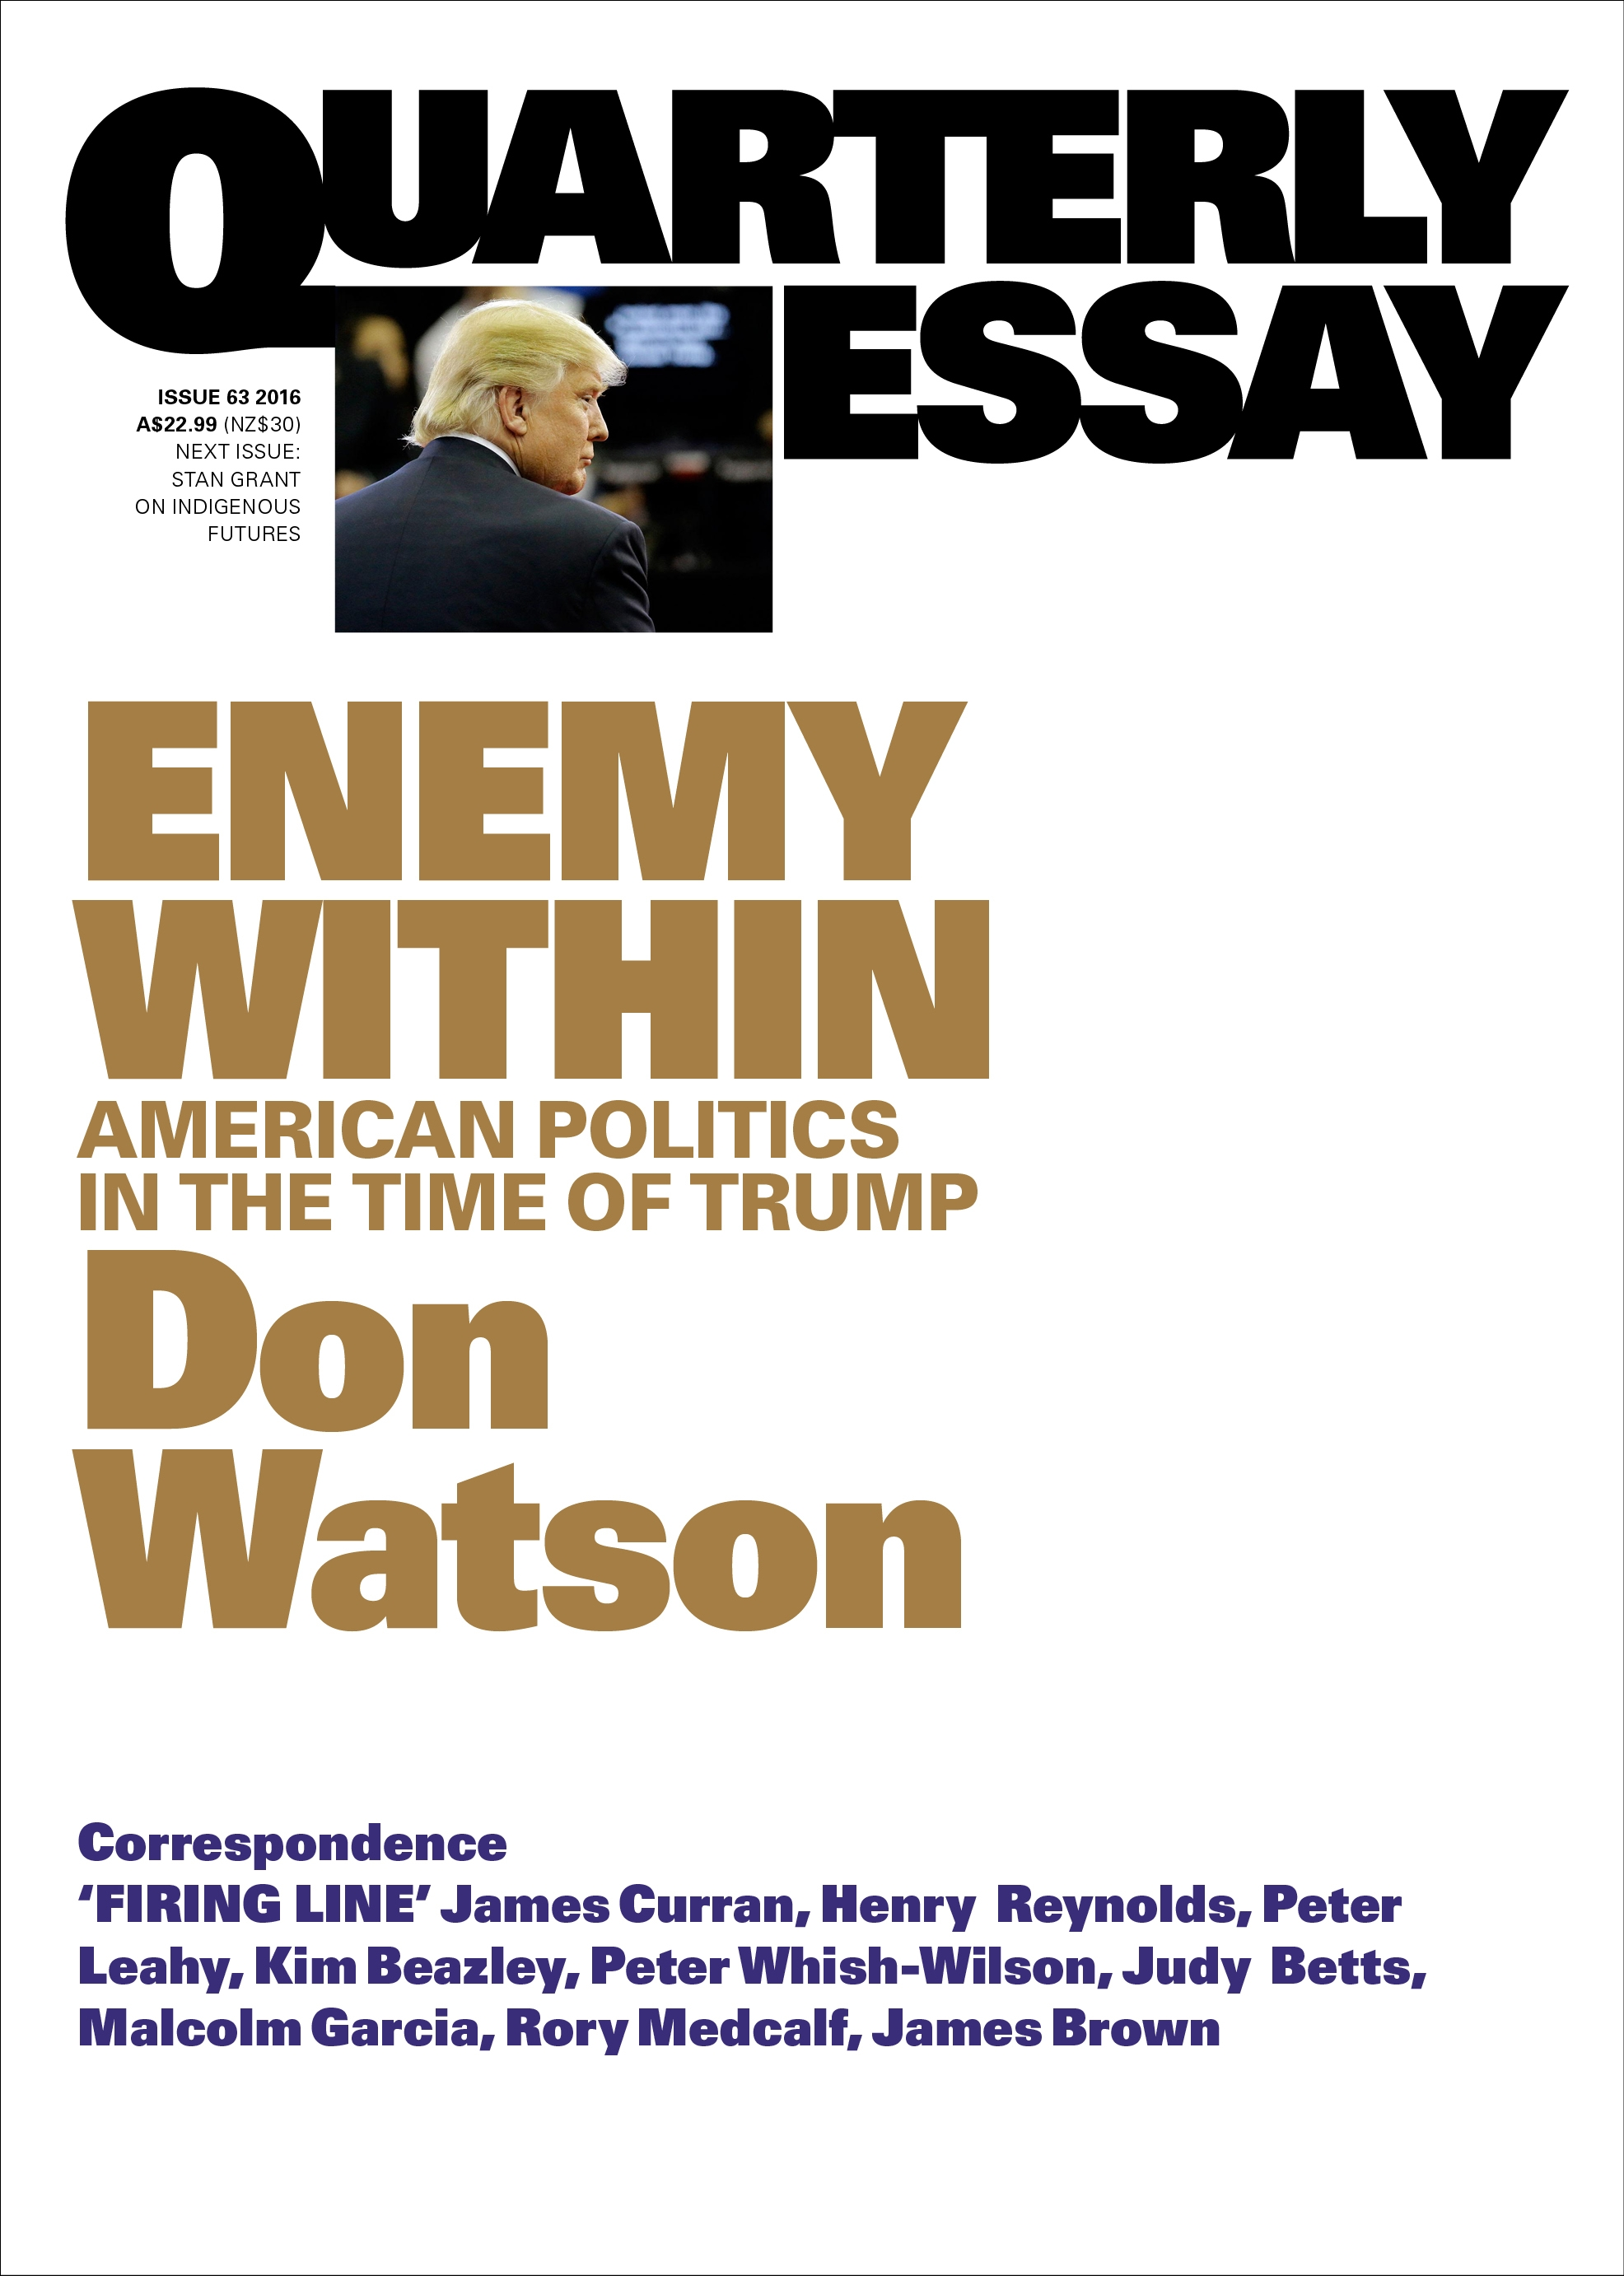 enemy in american politics in the time of trump quarterly enemy in american politics in the time of trump quarterly essay 63